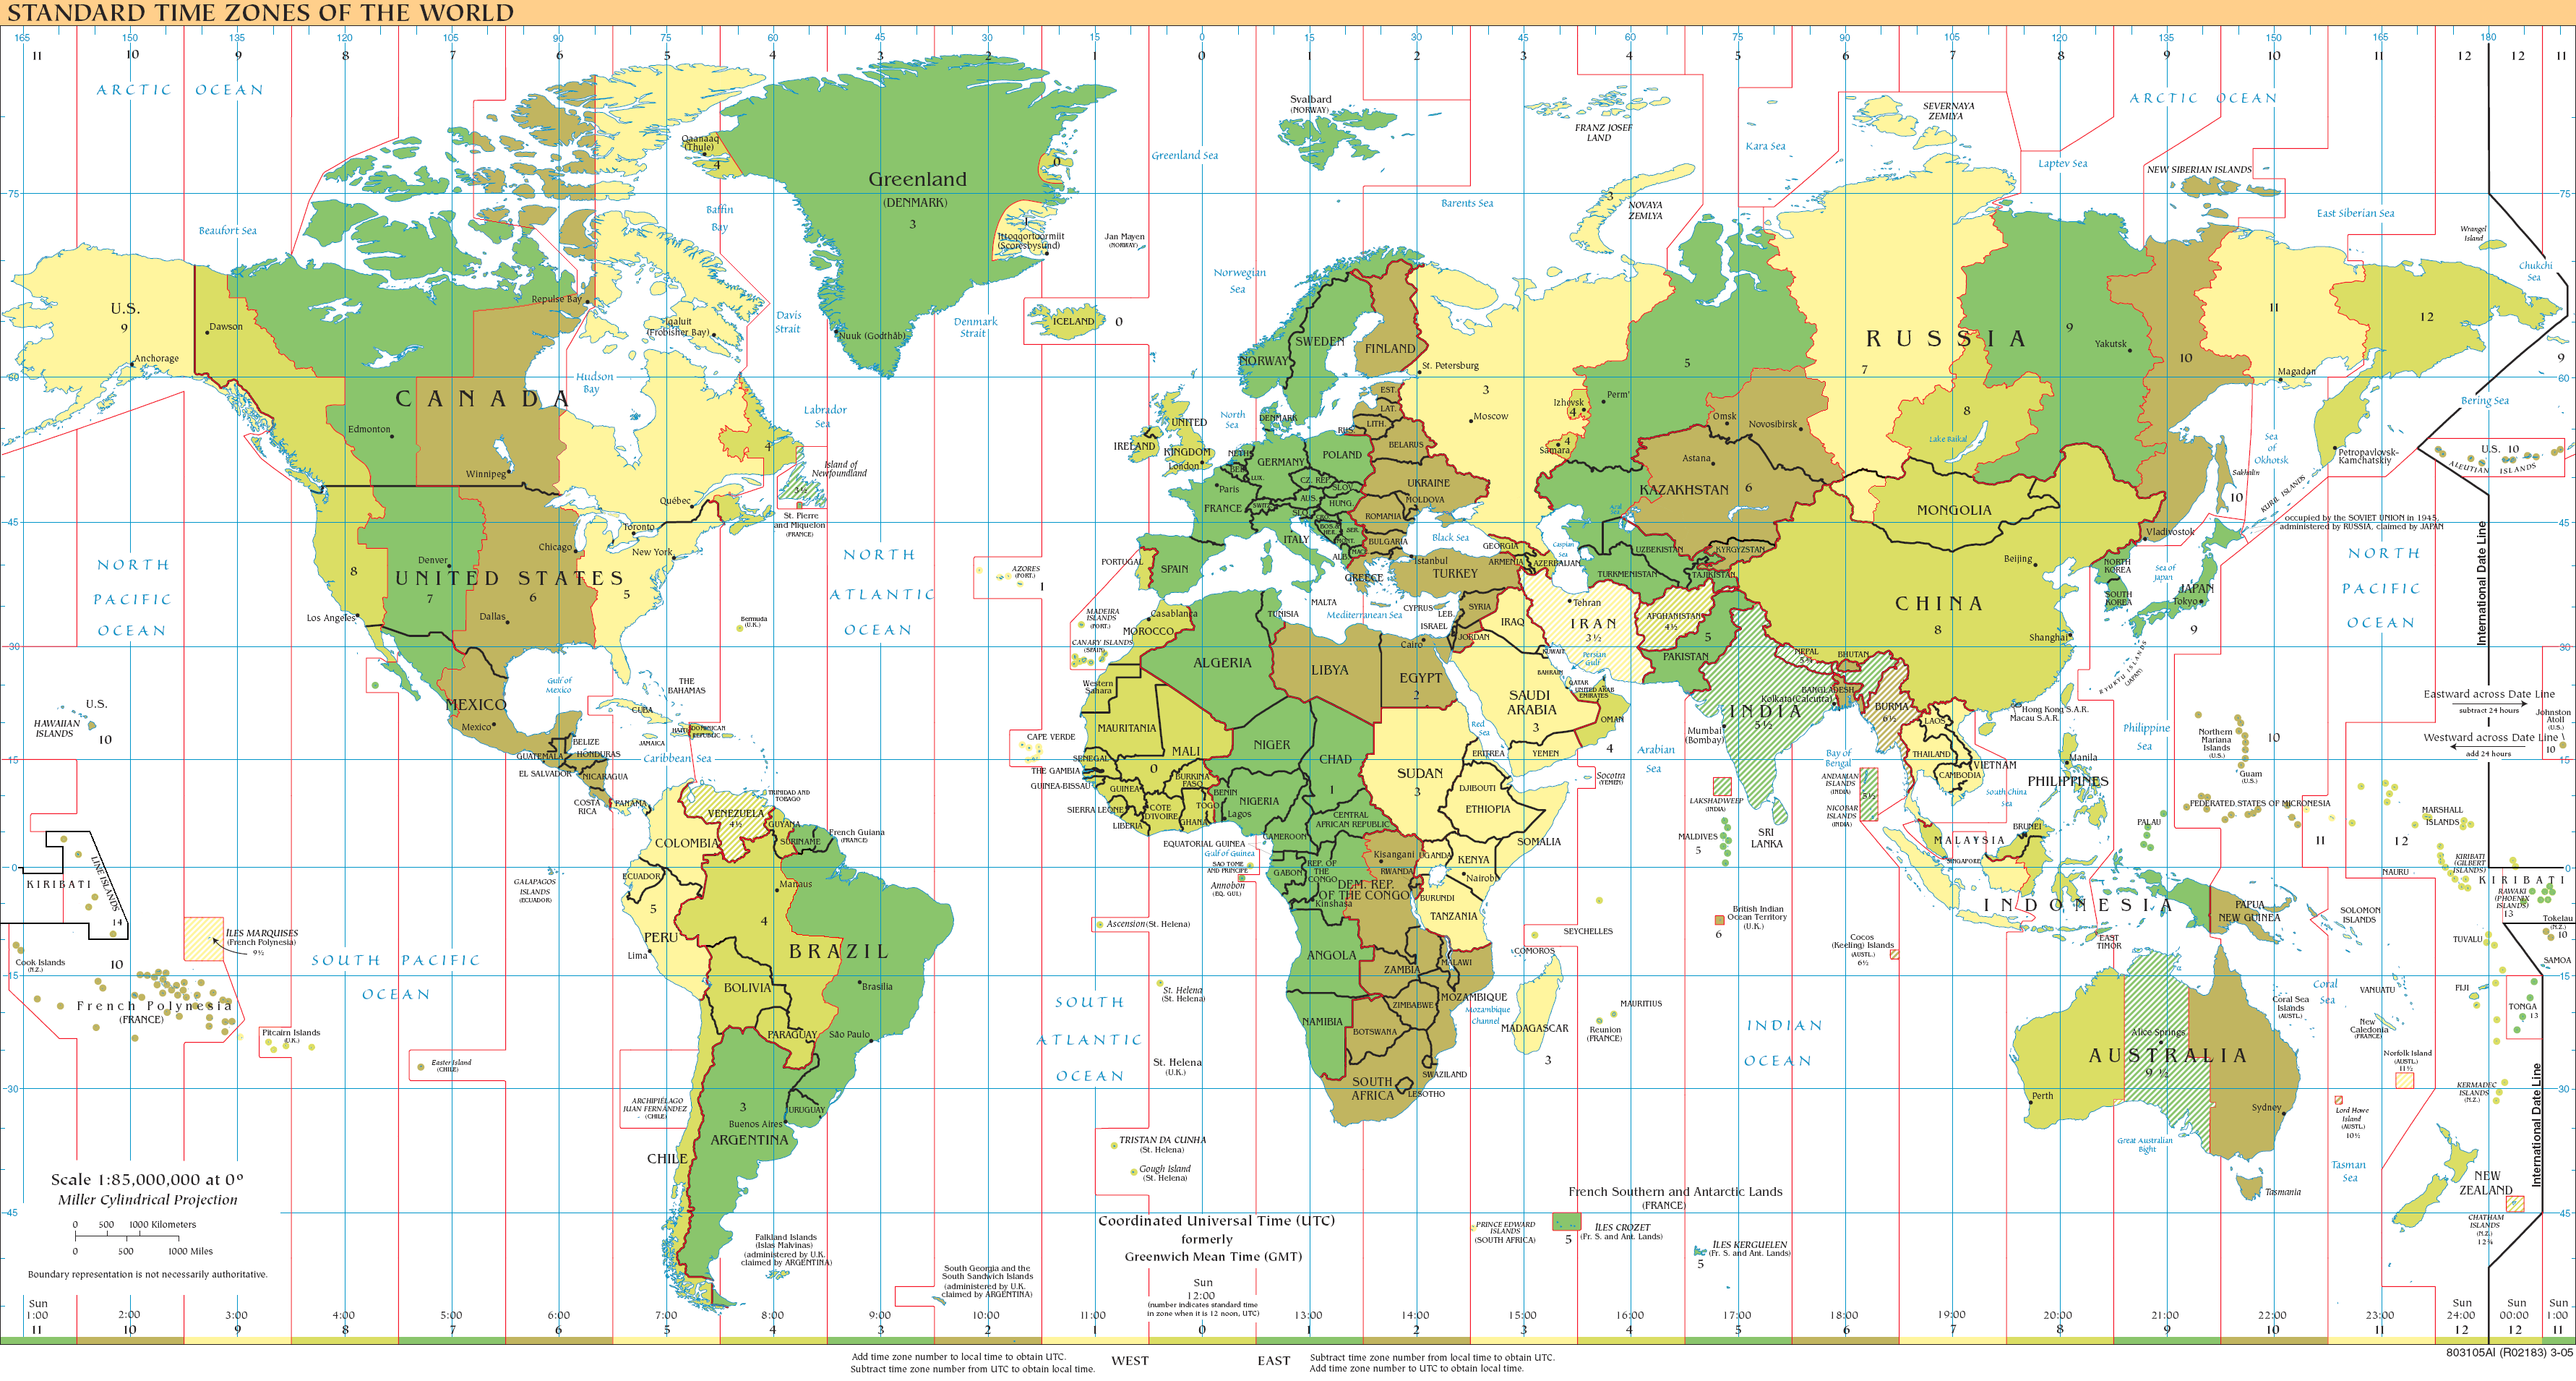 I Need A Mapping List Of Cities To Timezones Best Way To Get It